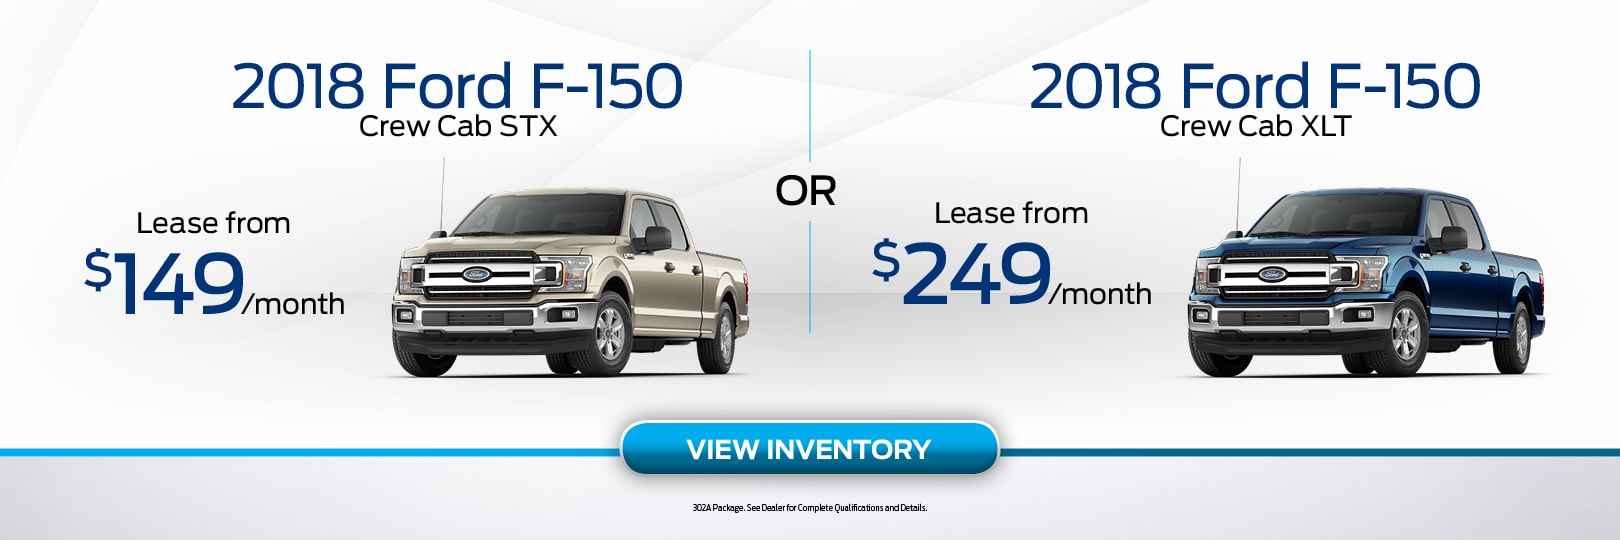 Hastings Automotive Inc Ford Dealership In Hastings MN - Ford dealerships mn